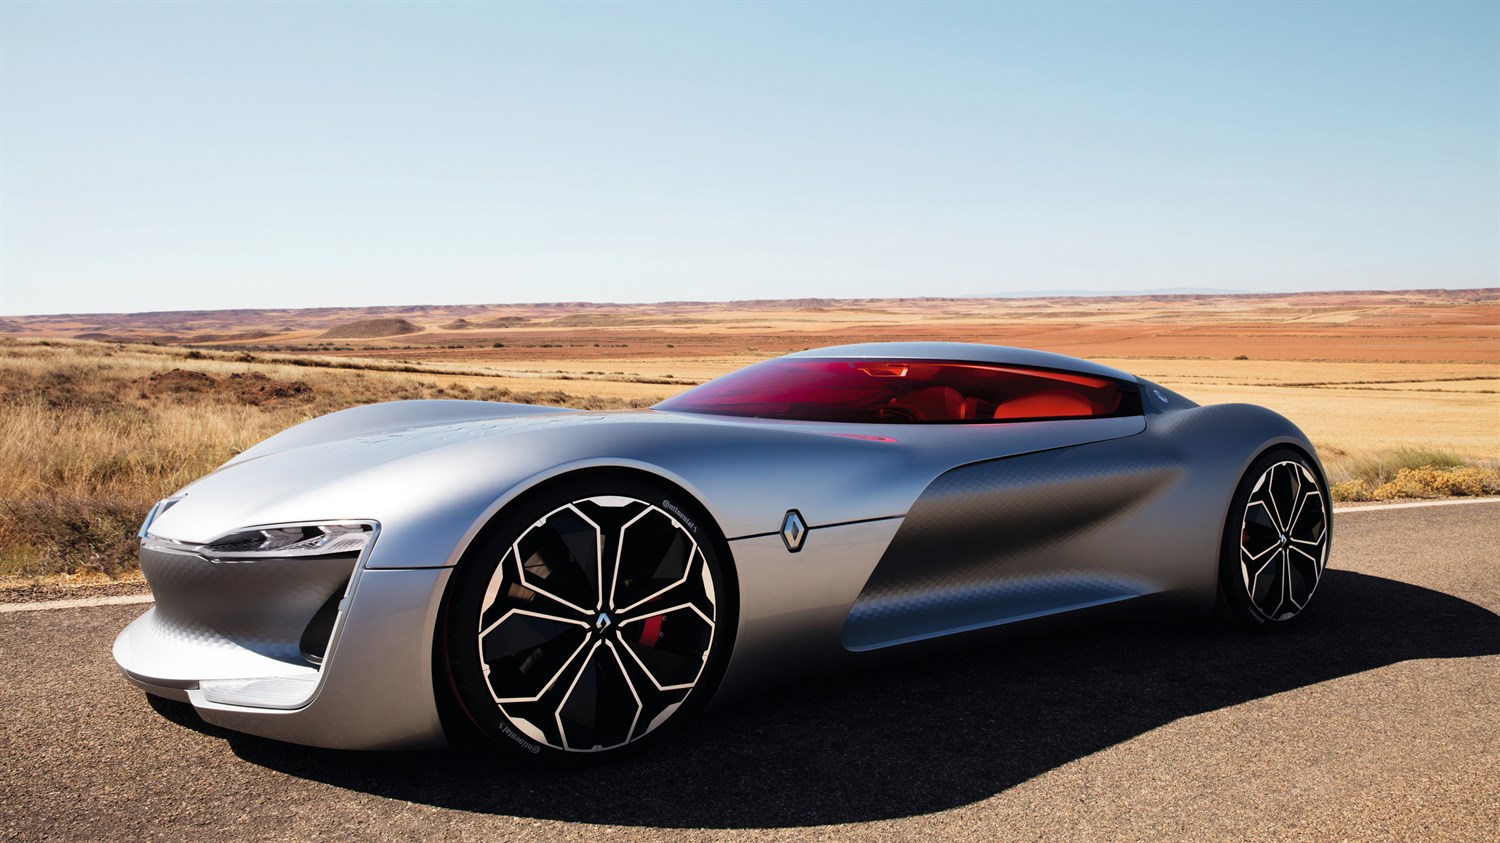 Renault TREZOR concept car on the road